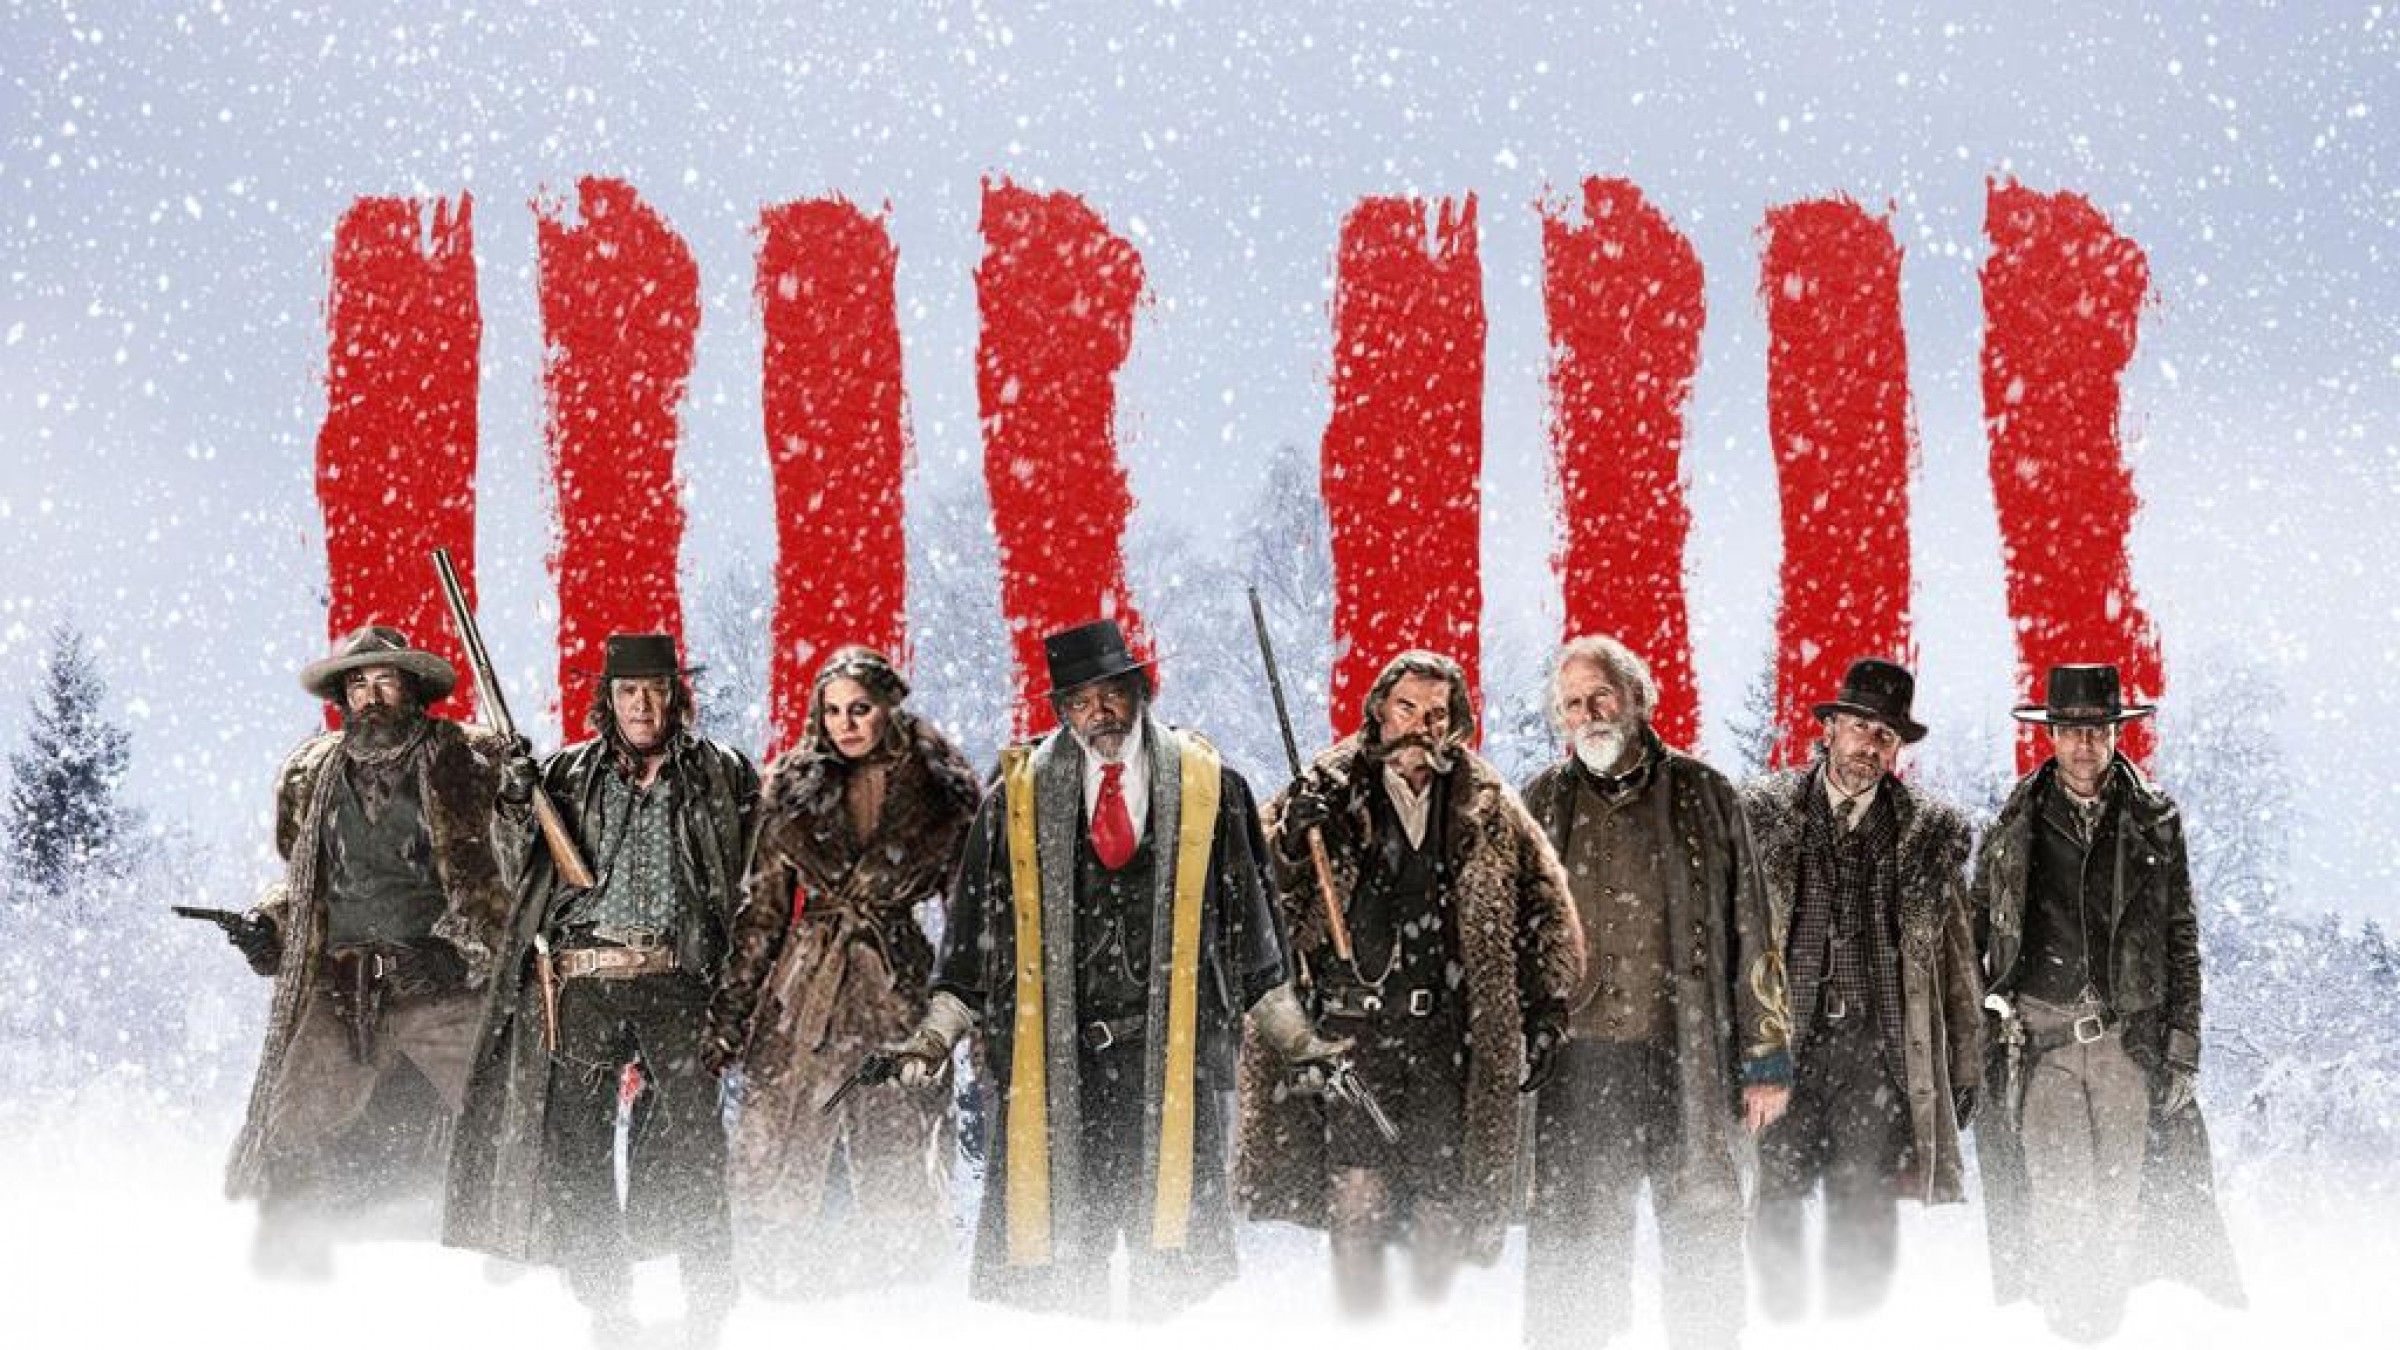 'The Hateful Eight' Screenplay Now Available For Your Consideration